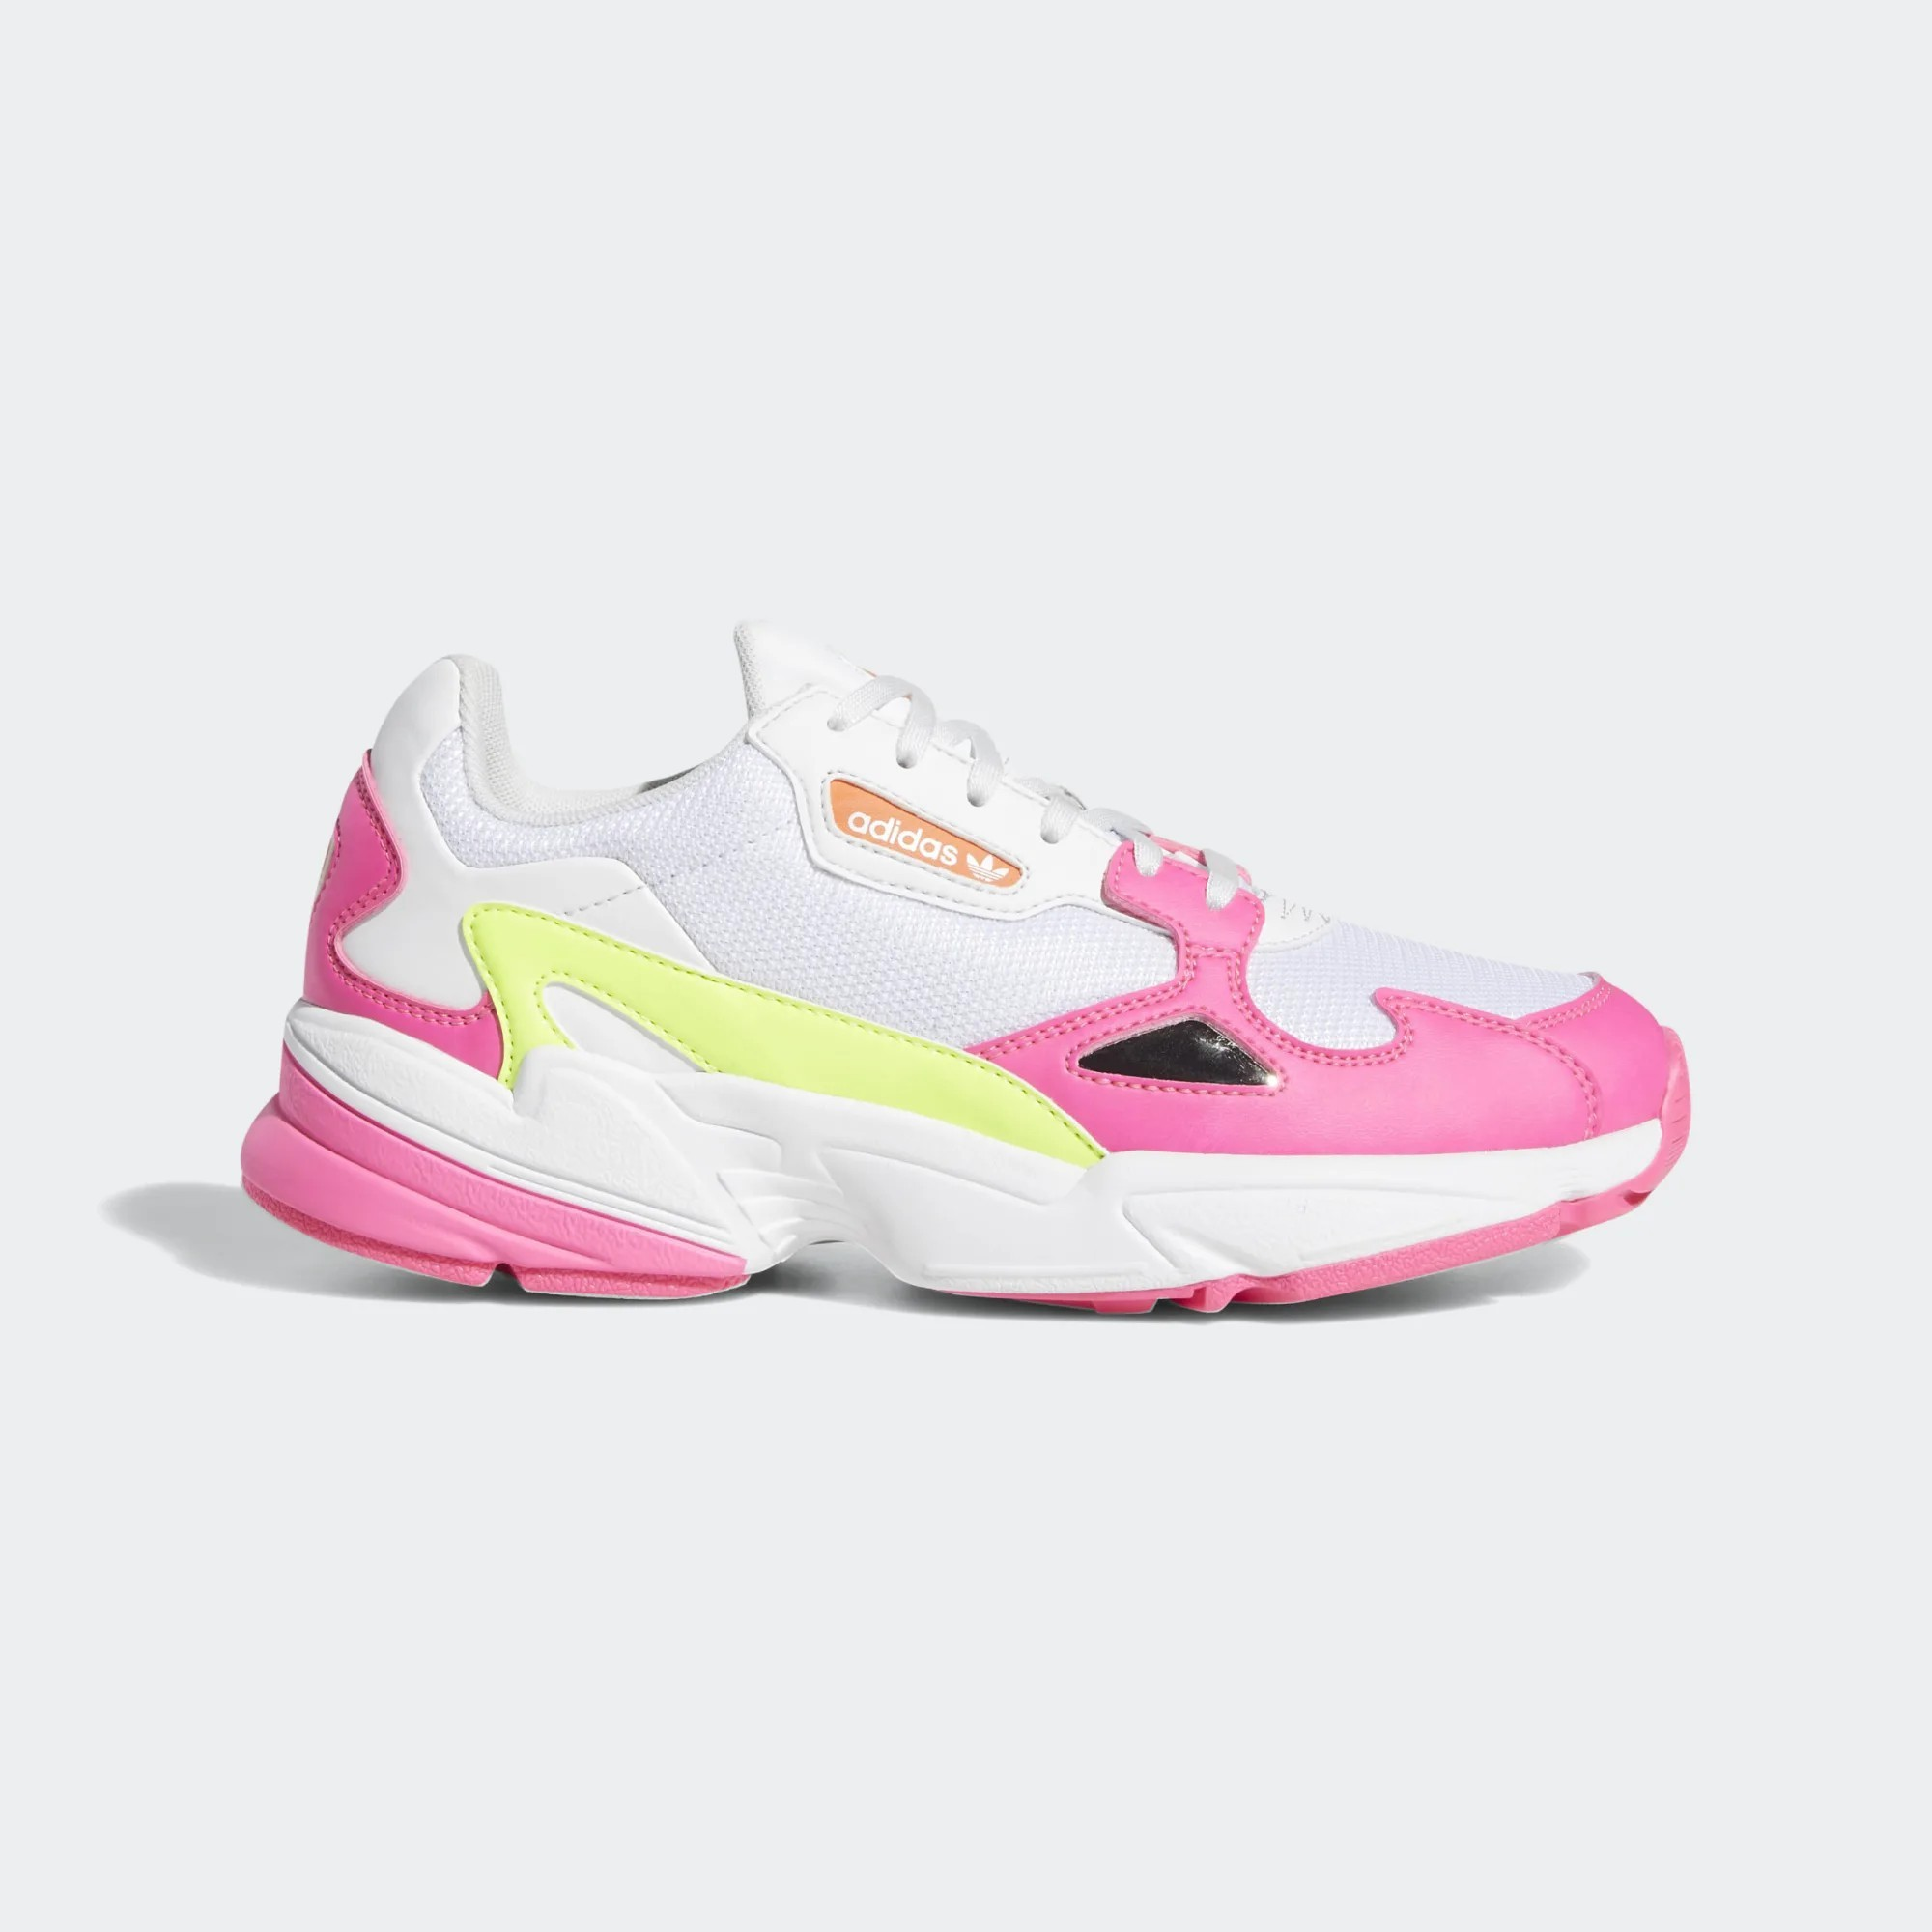 Femme Falcon 'Rose' Blanche/Rose adidas EE4405